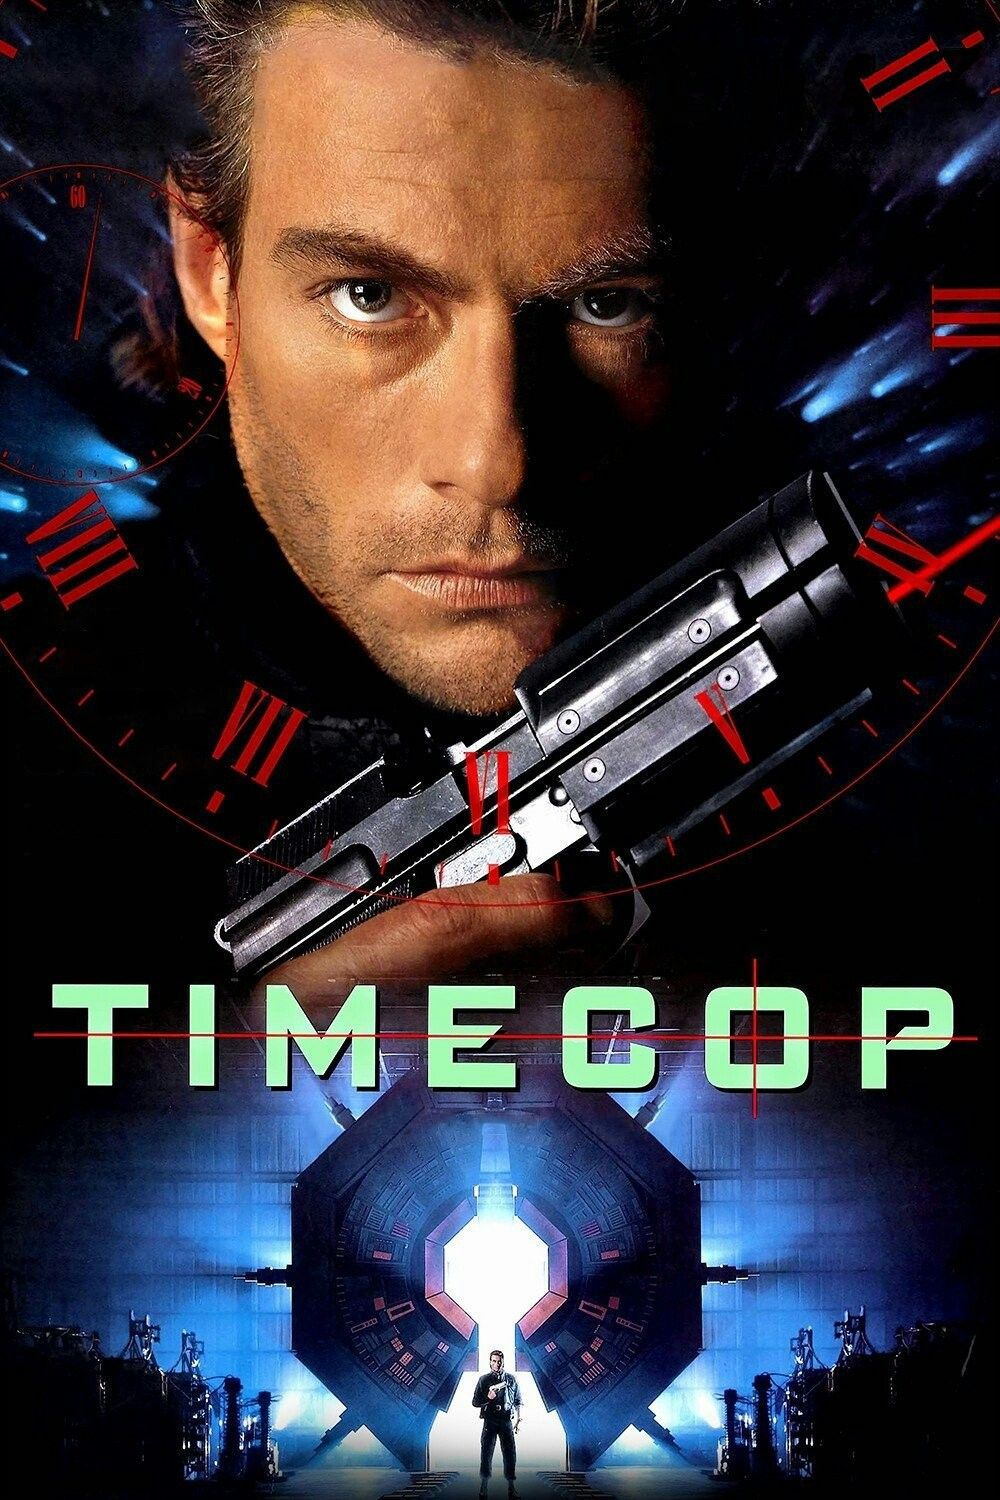 Timecop Streaming Movies Free Full Movies Online Free Full Movies Online